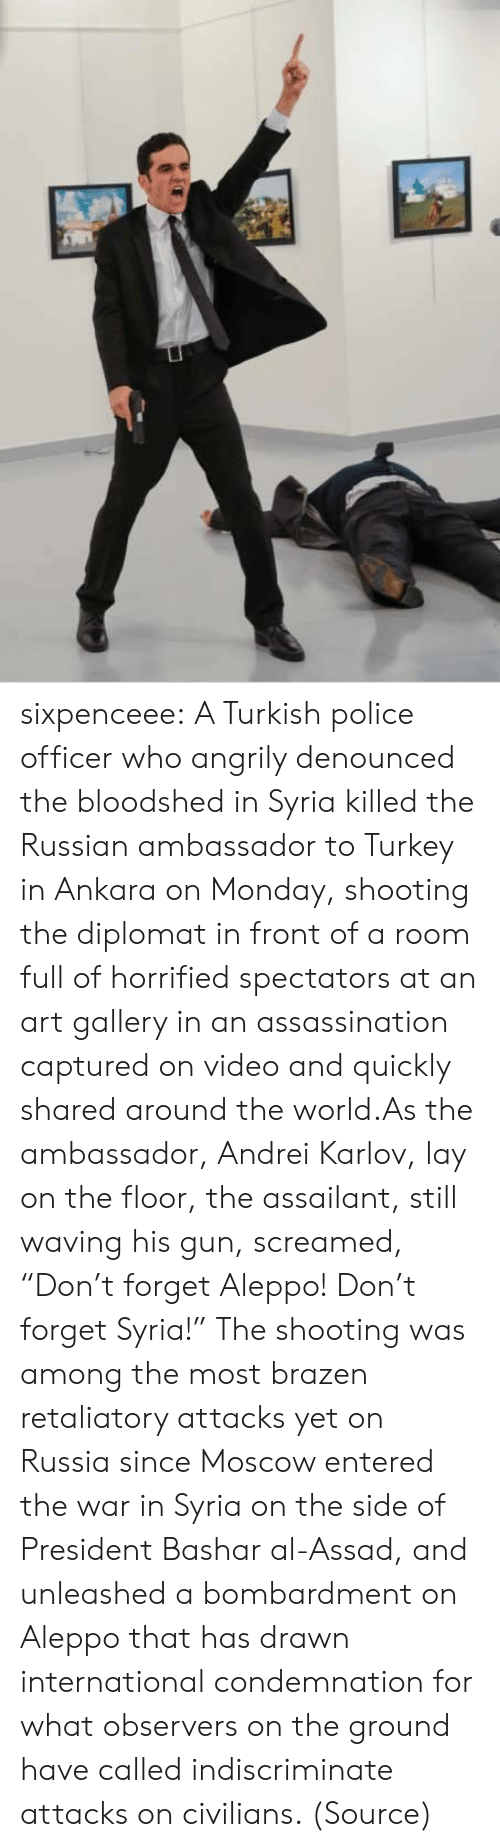 """Sixpenceee: sixpenceee:  A Turkish police officer who angrily denounced the bloodshed in Syria killed the Russian ambassador to Turkey in Ankara on Monday, shooting the diplomat in front of a room full of horrified spectators at an art gallery in an assassination captured on video and quickly shared around the world.As the ambassador, Andrei Karlov, lay on the floor, the assailant, still waving his gun, screamed, """"Don't forget Aleppo! Don't forget Syria!"""" The shooting was among the most brazen retaliatory attacks yet on Russia since Moscow entered the war in Syria on the side of President Bashar al-Assad, and unleashed a bombardment on Aleppo that has drawn international condemnation for what observers on the ground have called indiscriminate attacks on civilians. (Source)"""